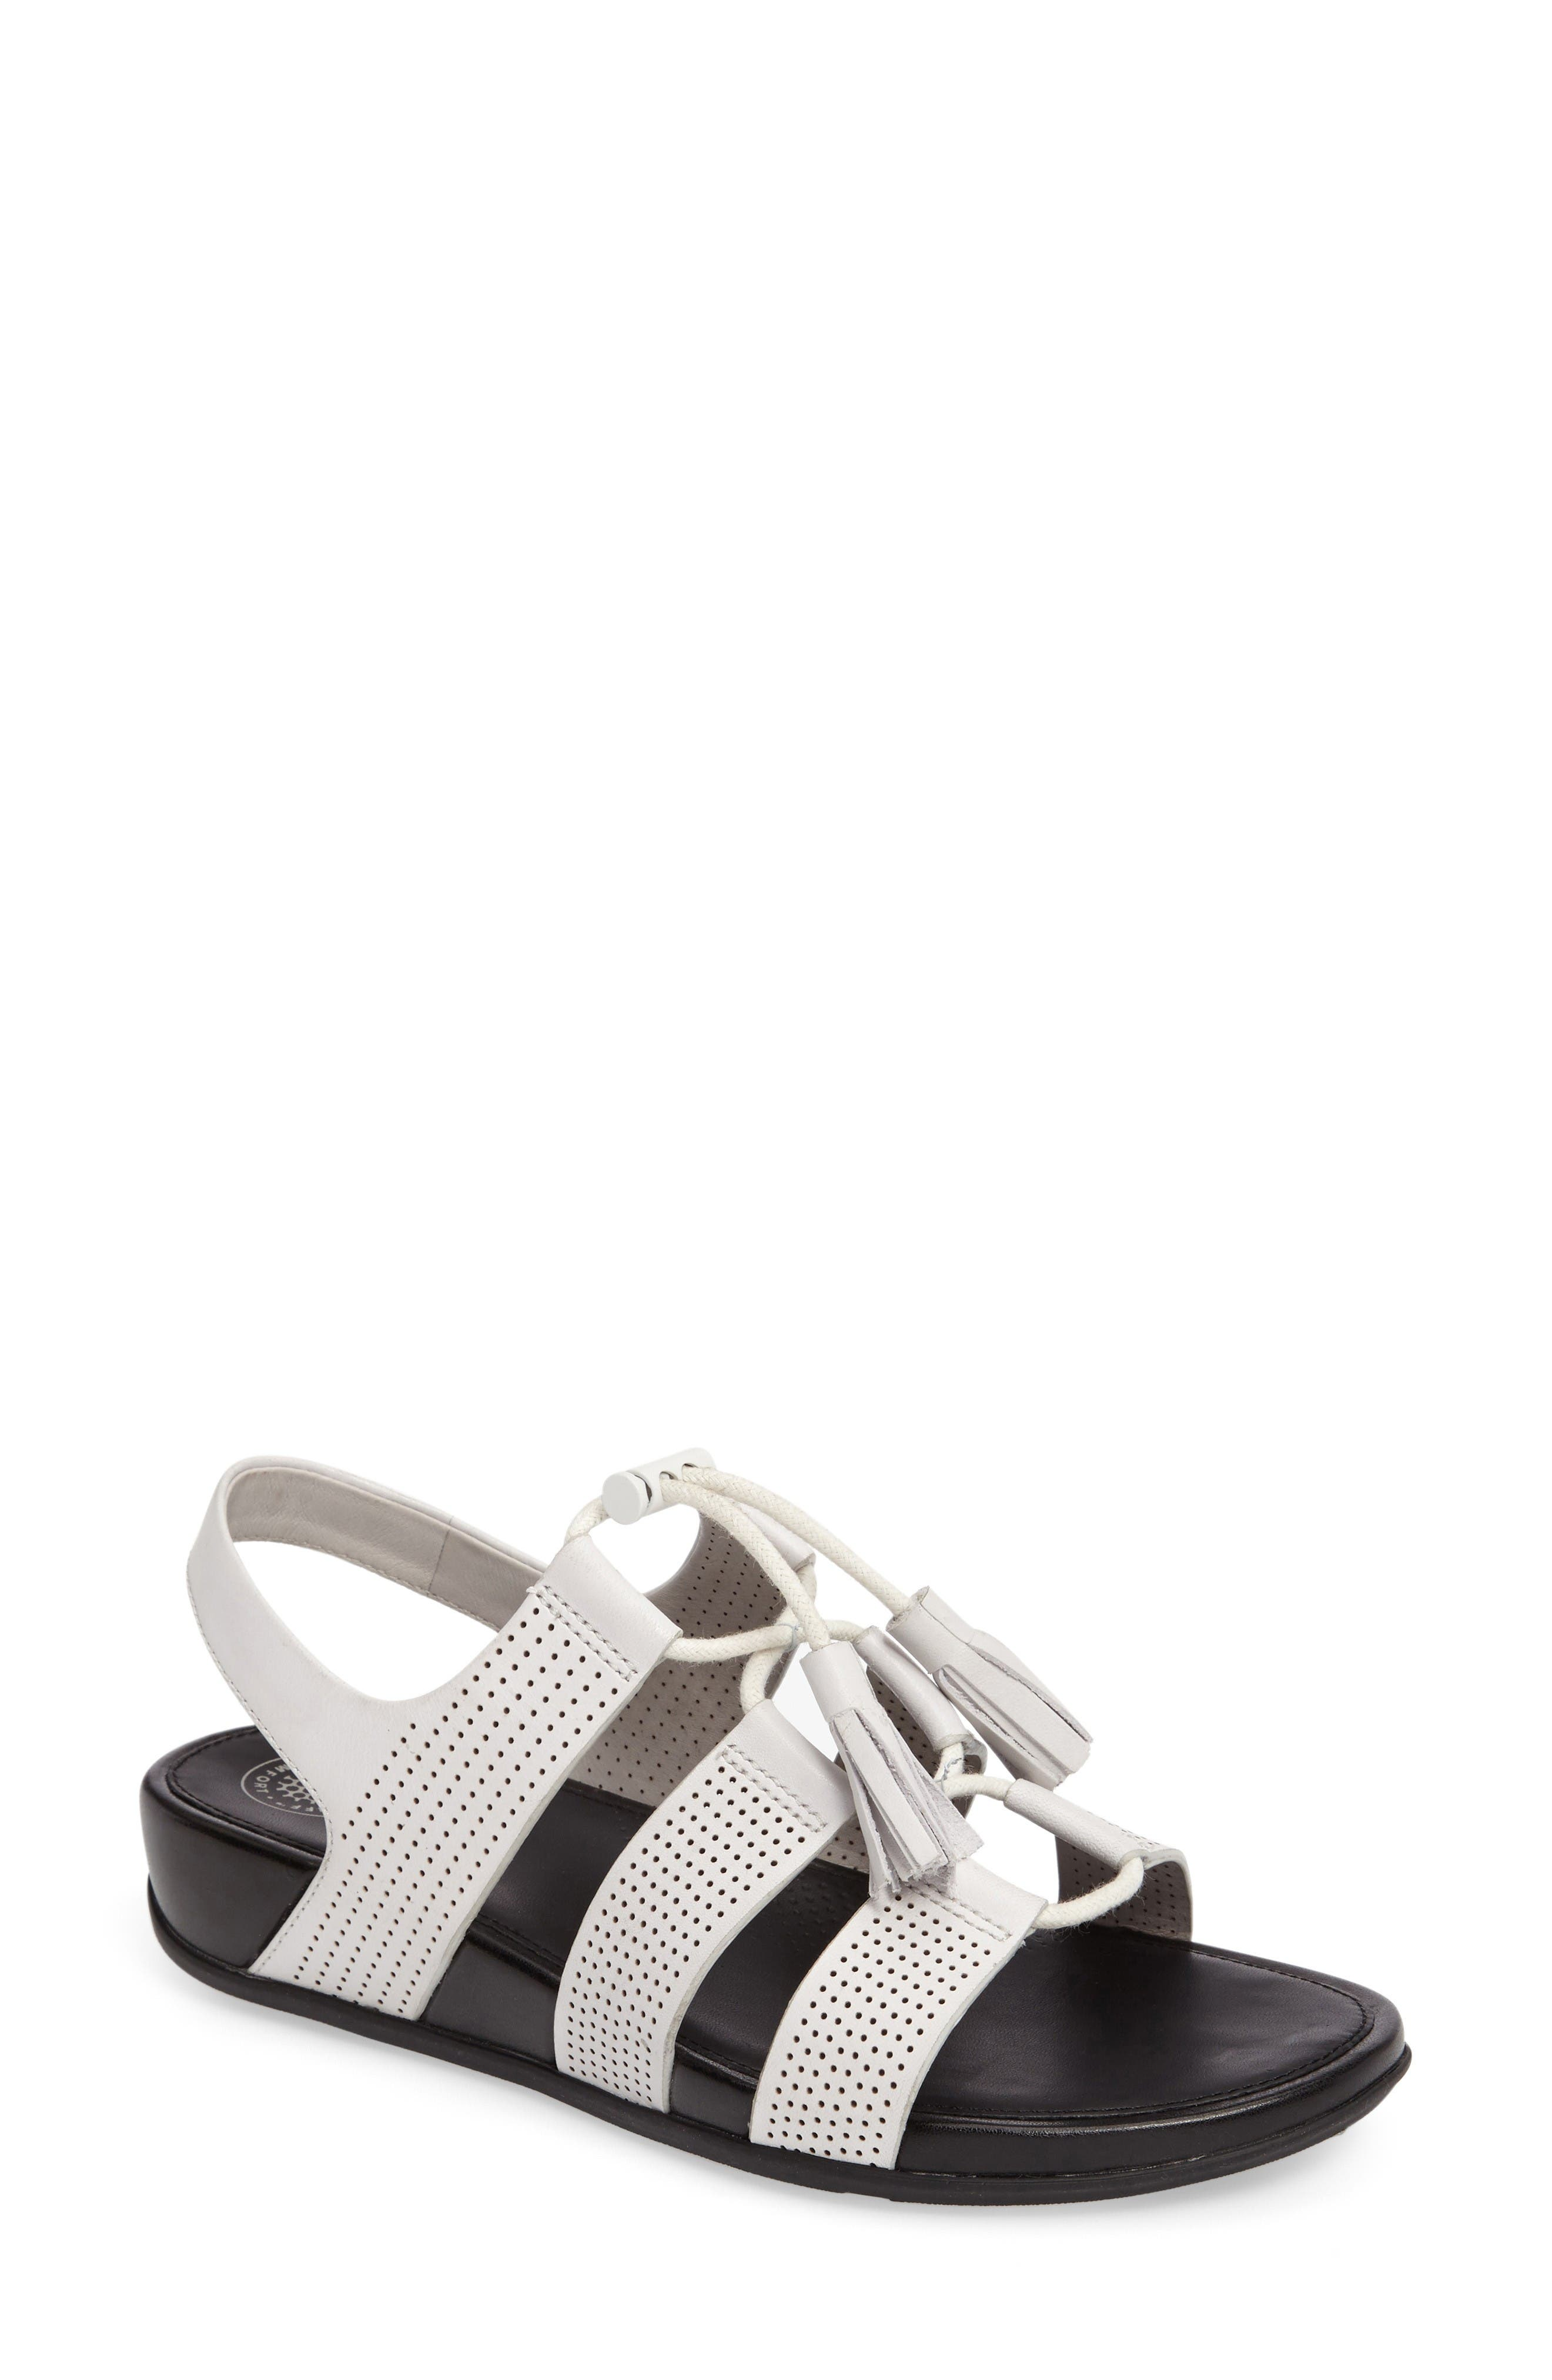 Alternate Image 1 Selected - FitFlop Gladdie Lace-Up Sandal (Women)